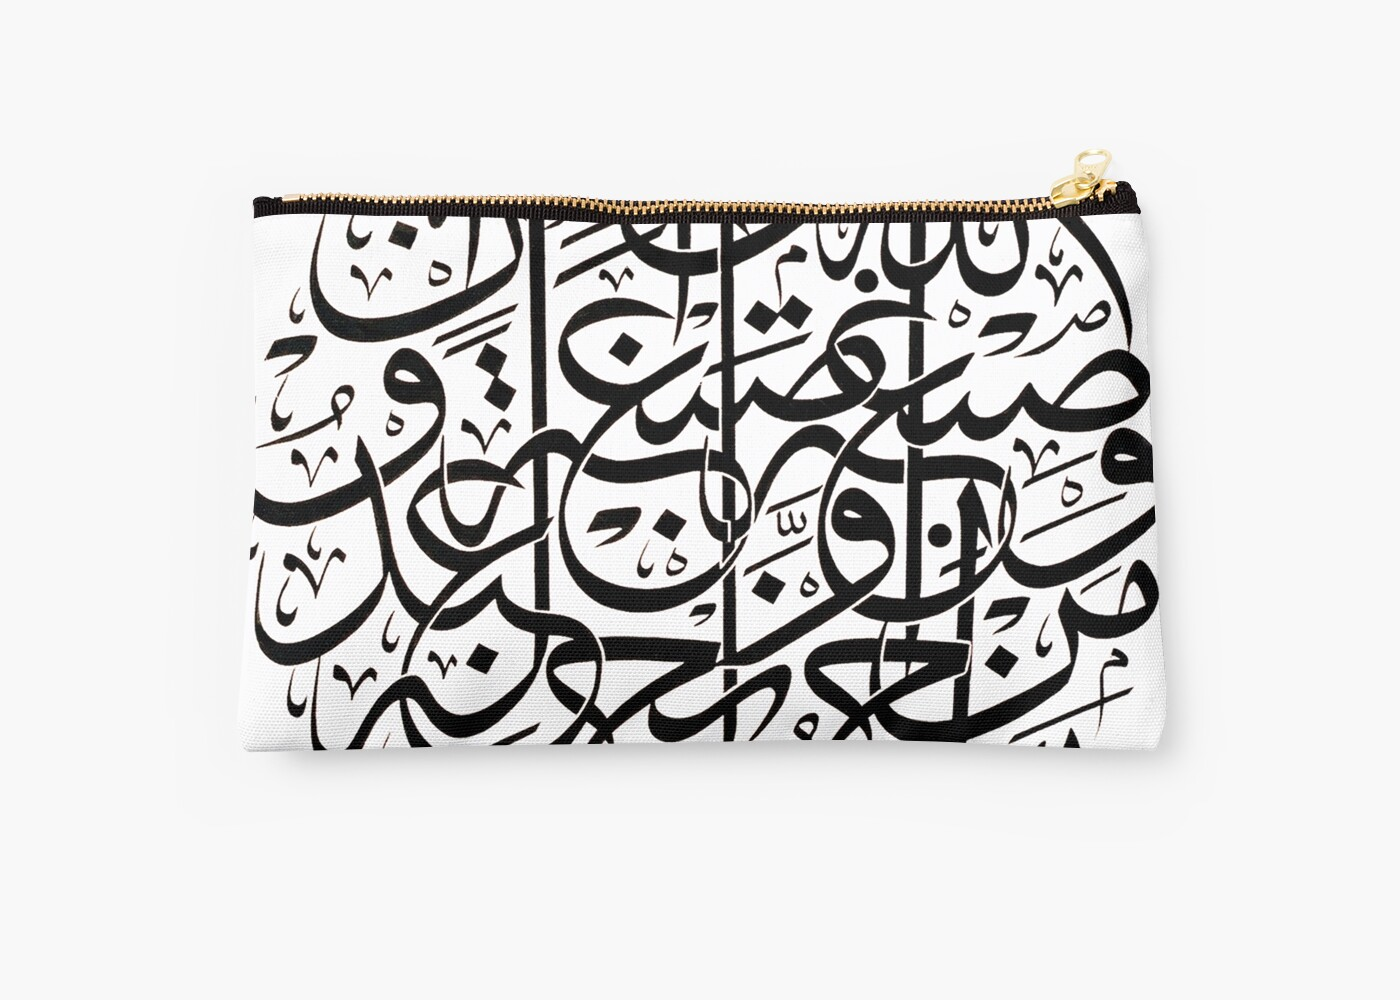 arabic writing Looking for the perfect arabic calligraphy you can stop your search and come to etsy, the marketplace where sellers around the world express their creativity through handmade and vintage goods.